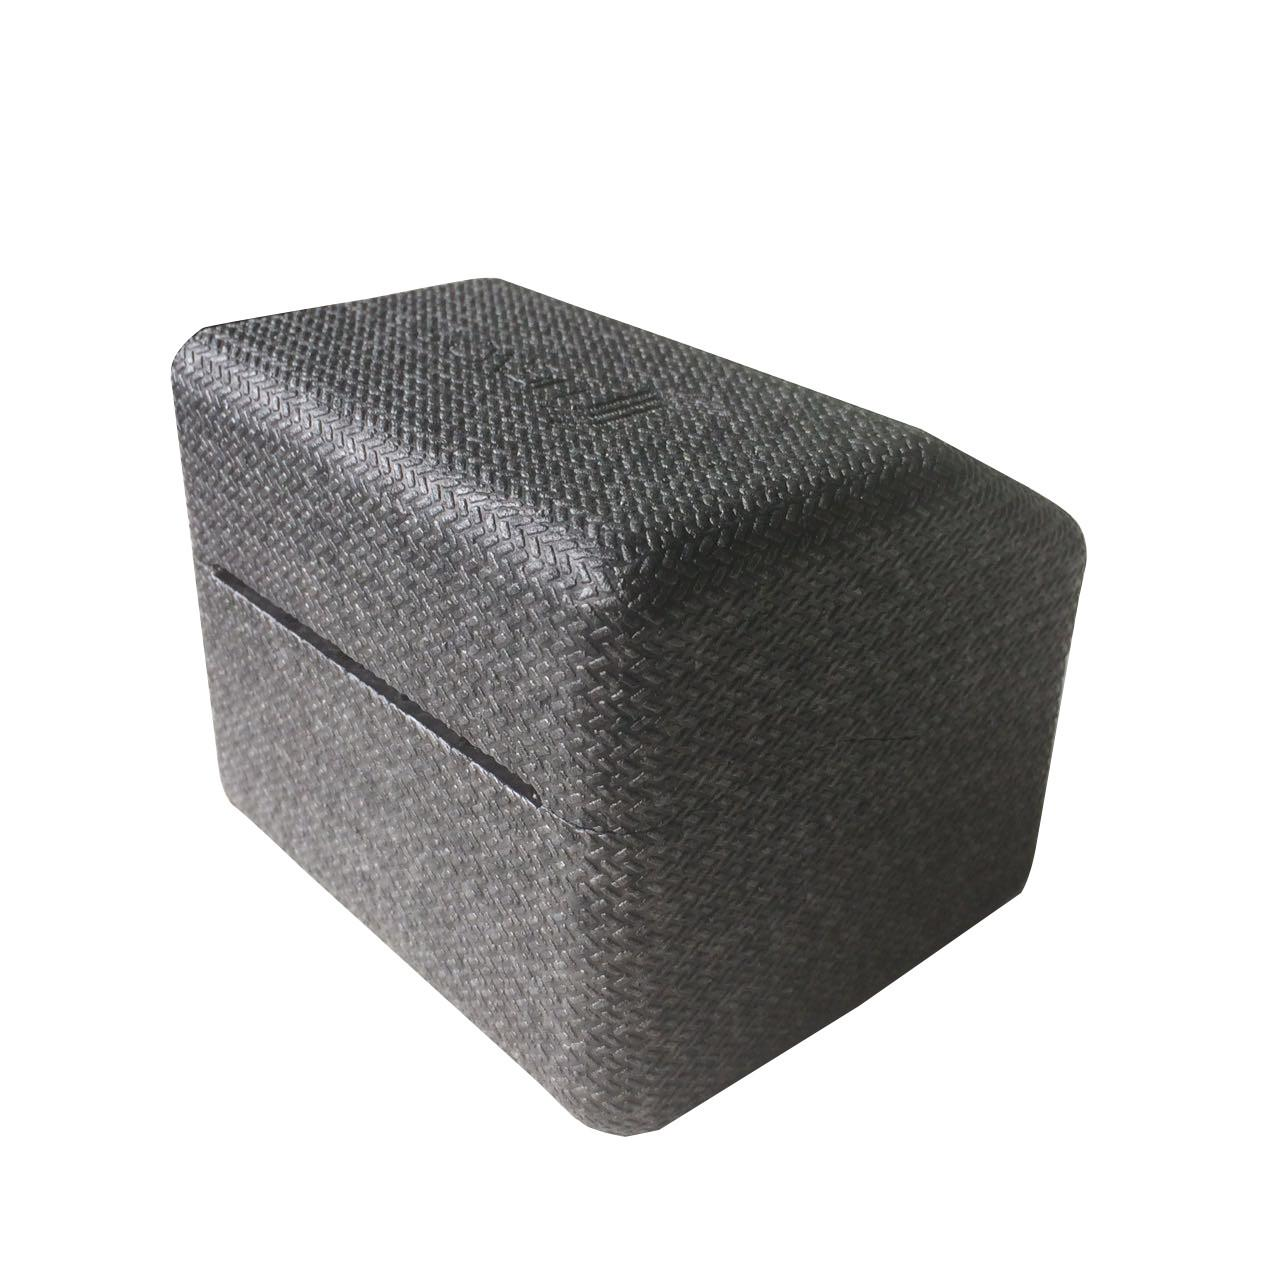 Quality textured premium EPP cushion case for watch from HOMI EPP factory for sale